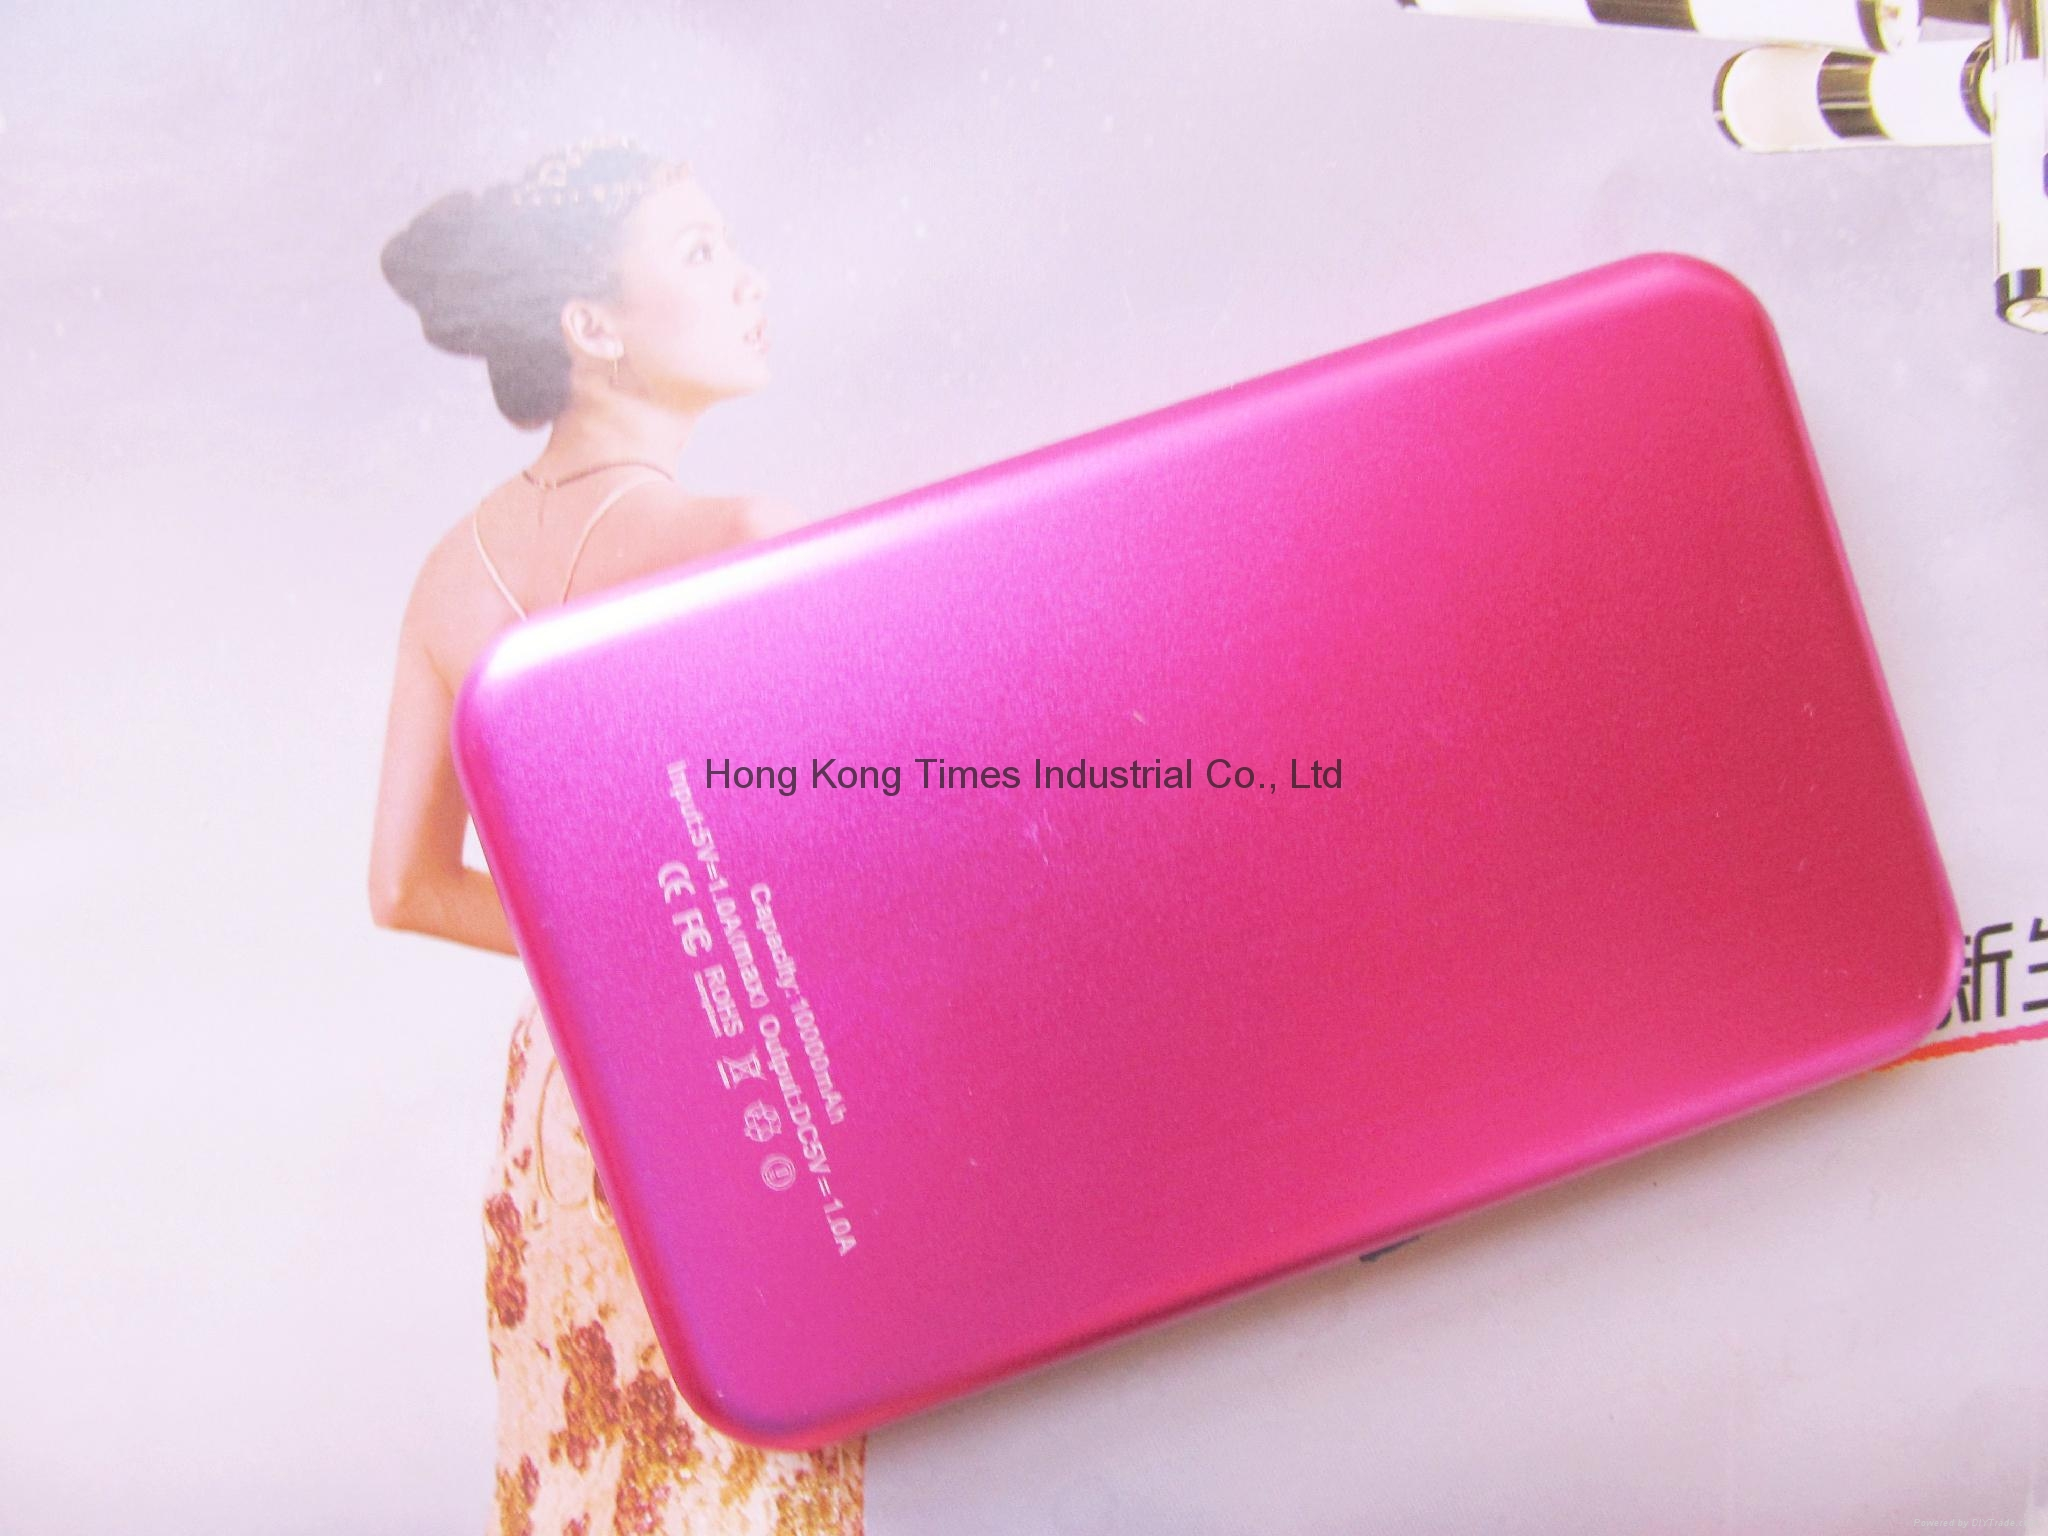 Power Bank USB External Mobile charger for iphone 6s , iphone 6s plus, samsung 5